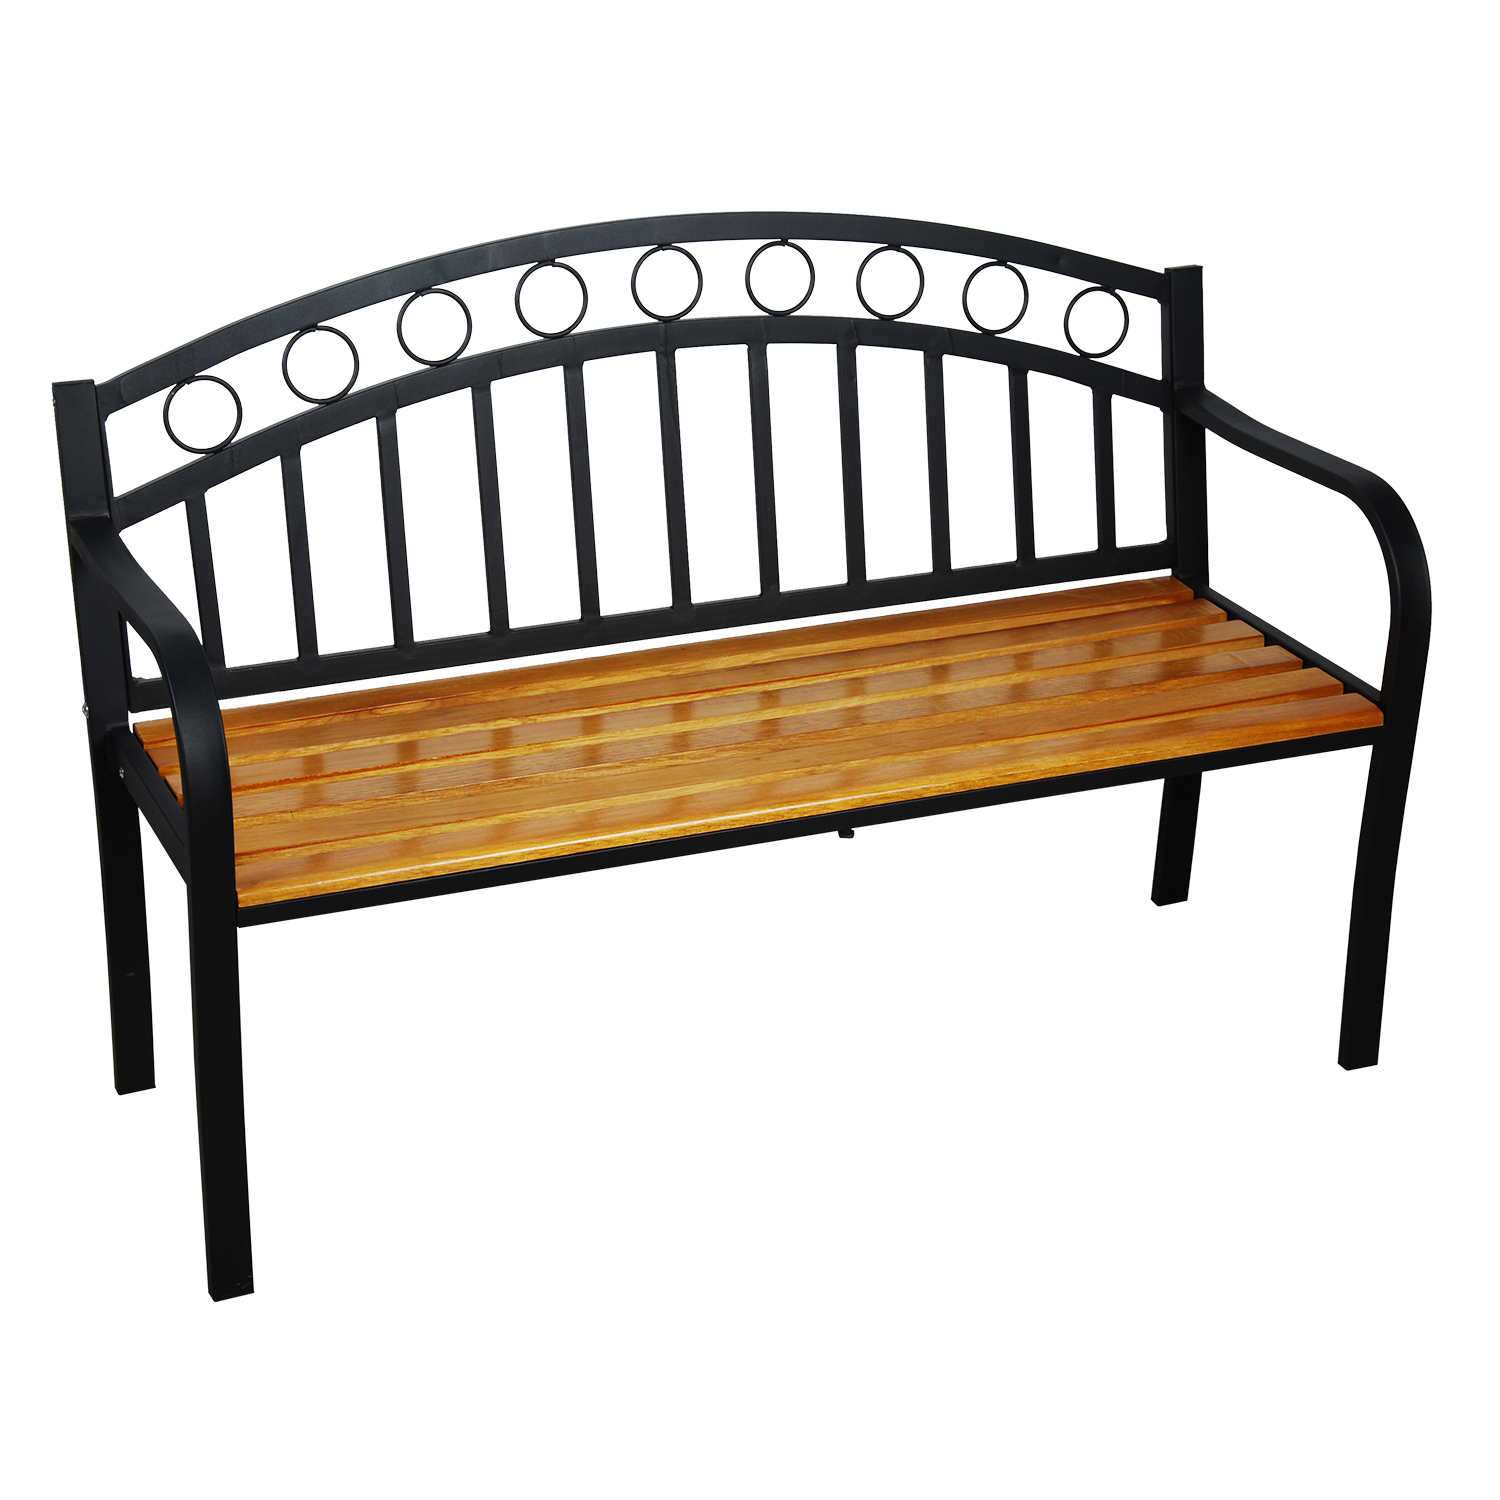 astonica 50140961 outdoor jasper metal and wood garden bench ebay. Black Bedroom Furniture Sets. Home Design Ideas